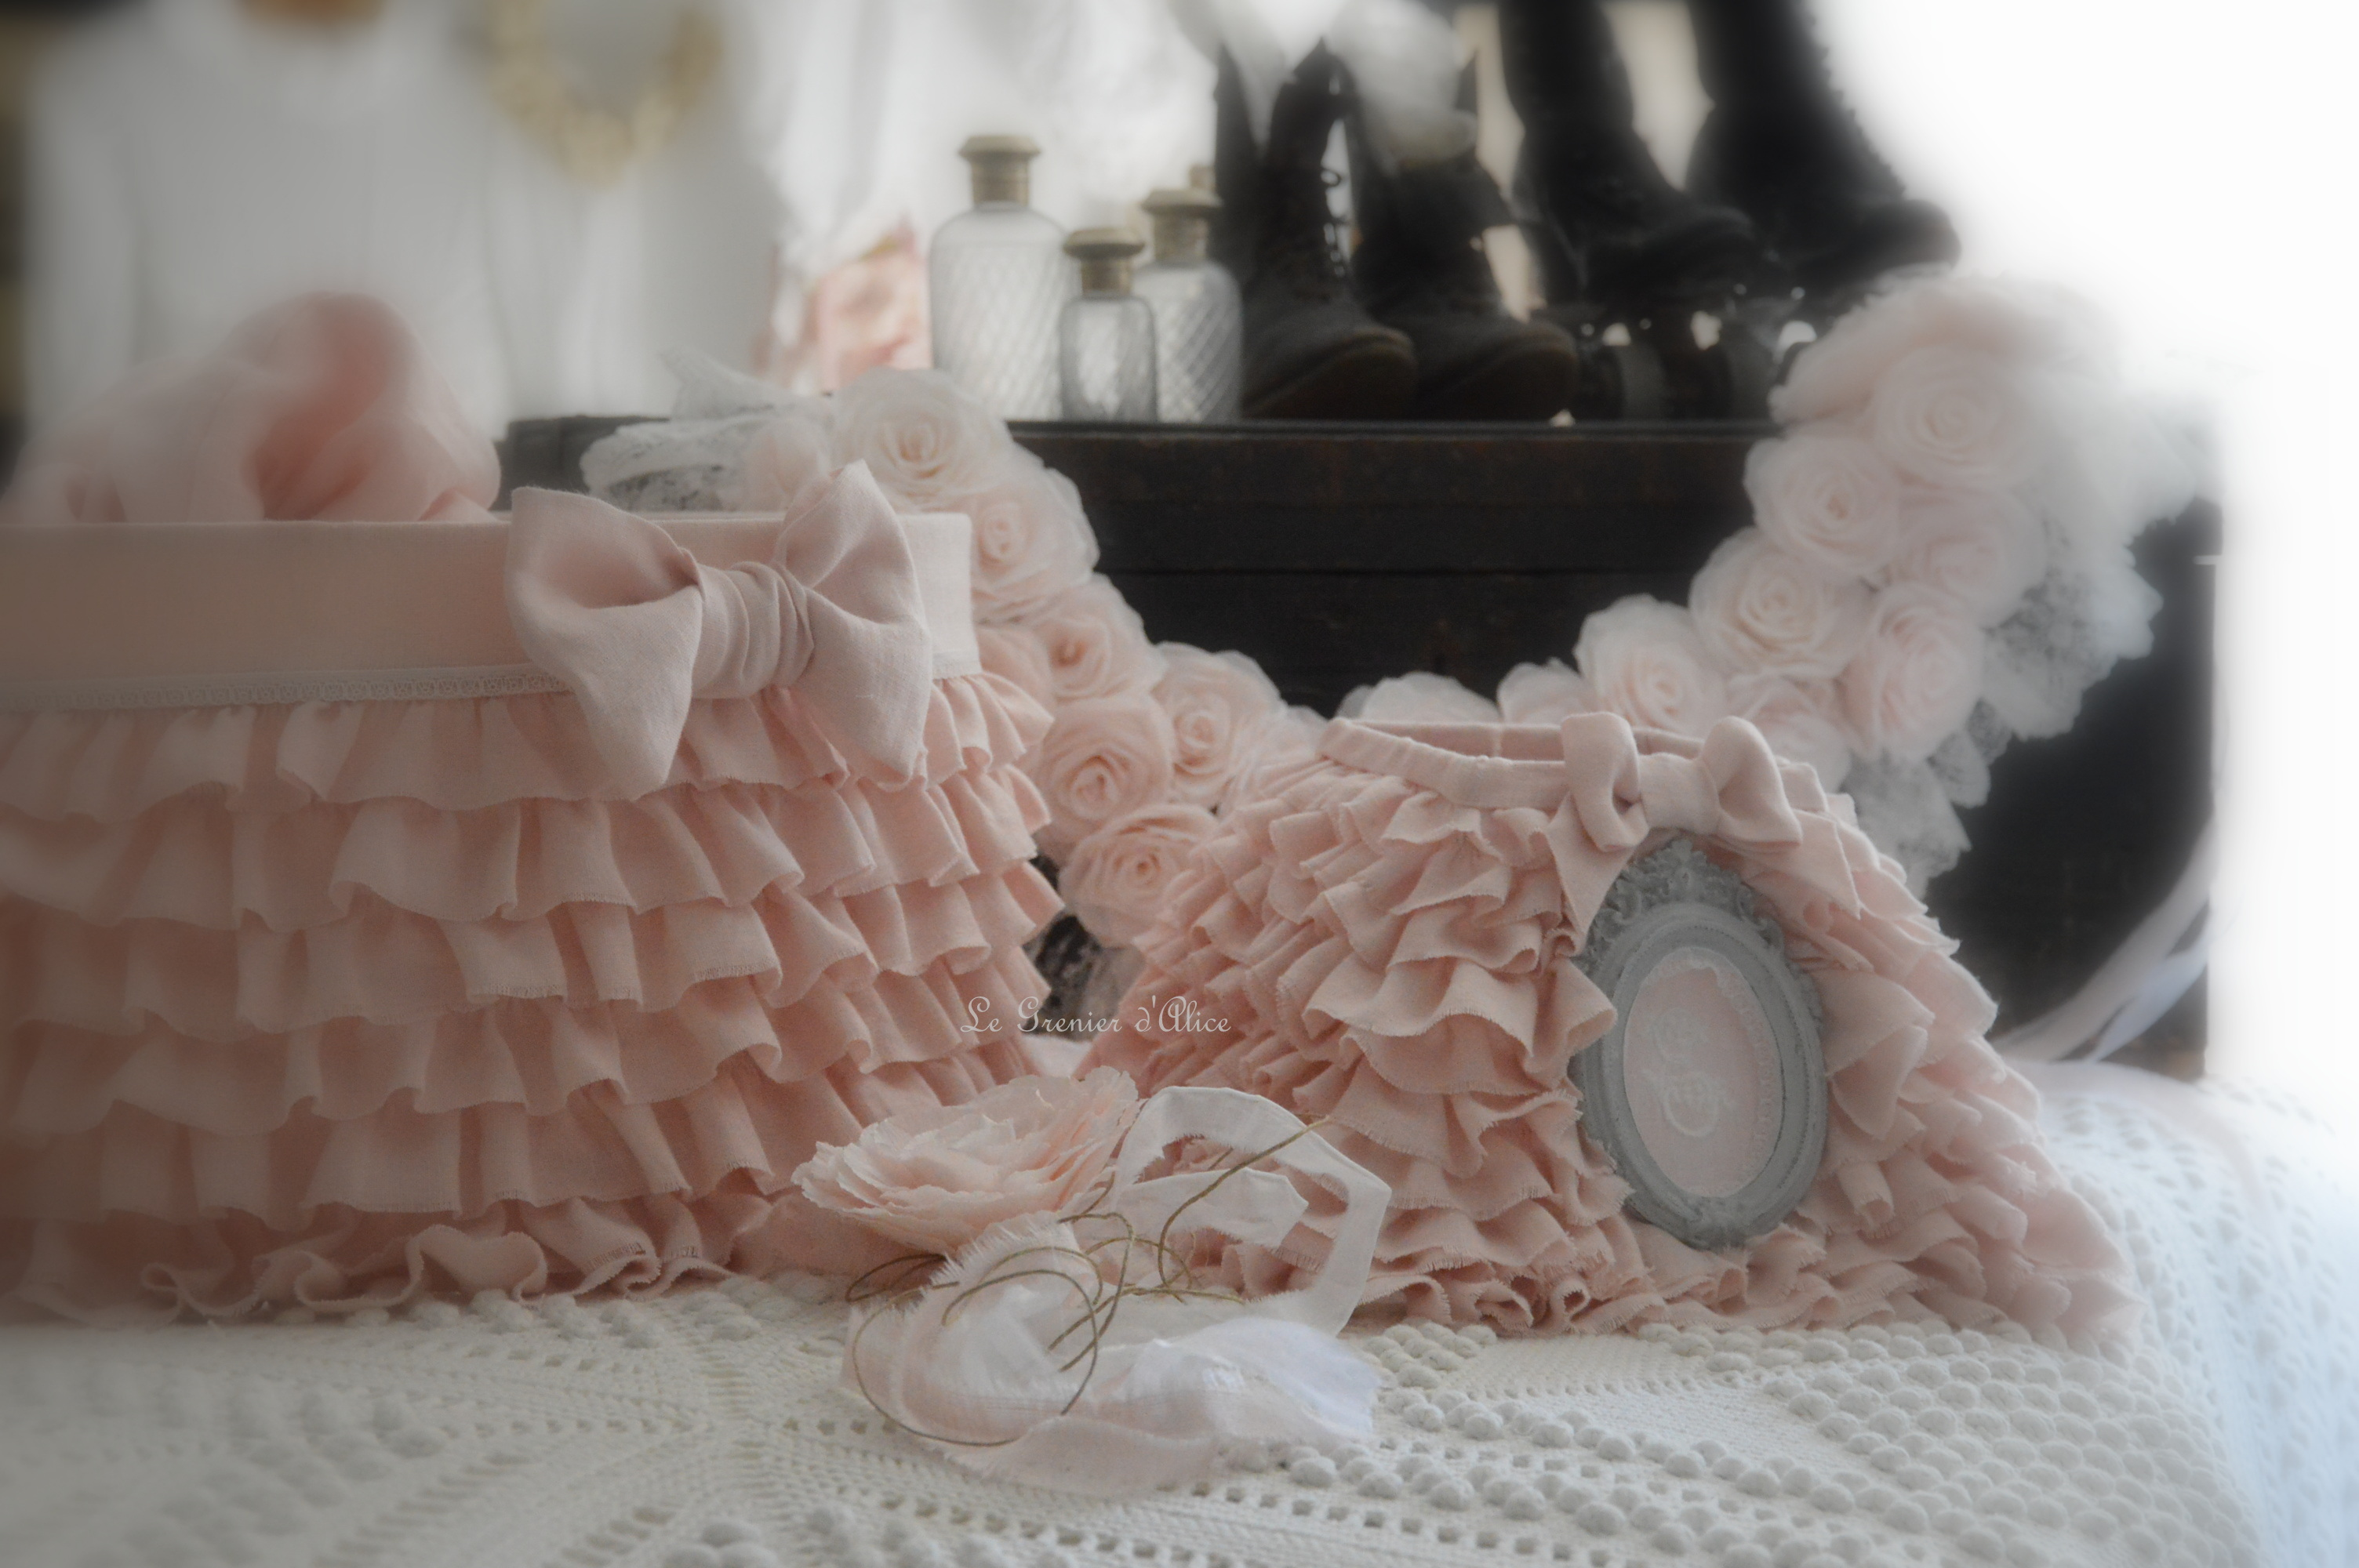 Suspension abat jour lustre froufrou volant lin rose poudré ornement moulure patiné shabby chic romantique deco charme cosy deco french guirlande rose papier crépon dentelle ruban